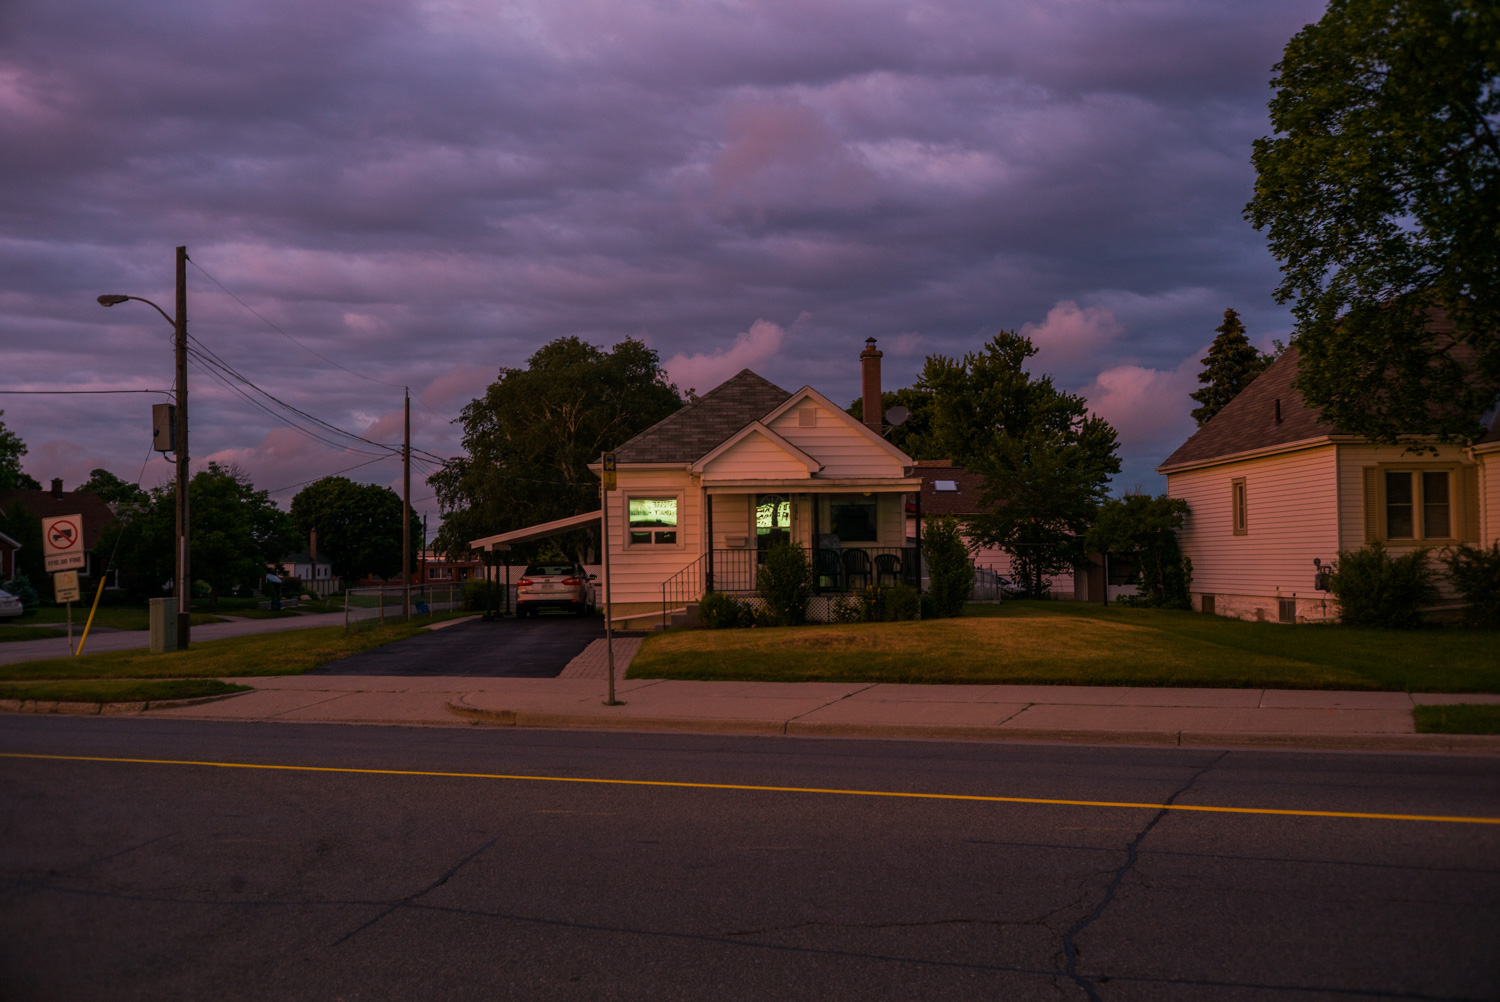 house with green light in window.jpg